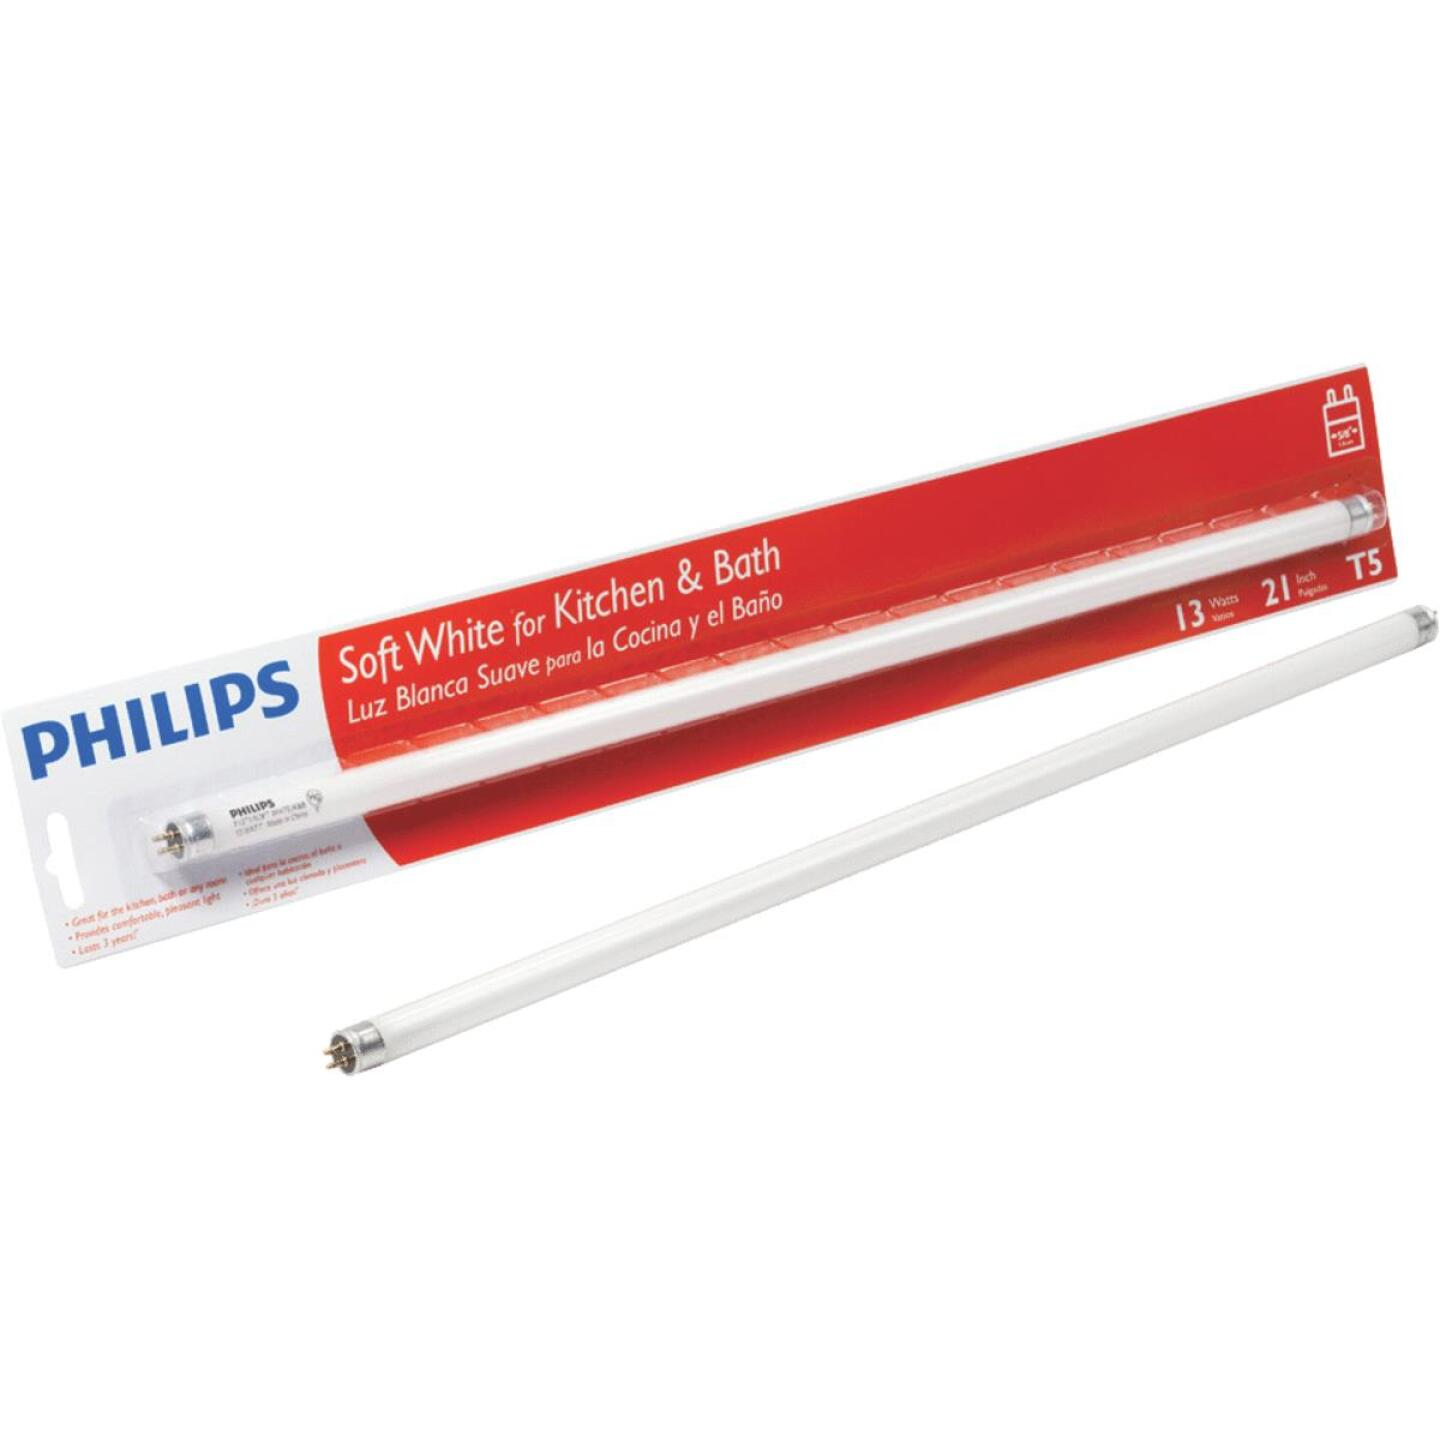 Philips 13W 21 In. Bright White T5 Miniature Bi-Pin Fluorescent Tube Light Bulb Image 1